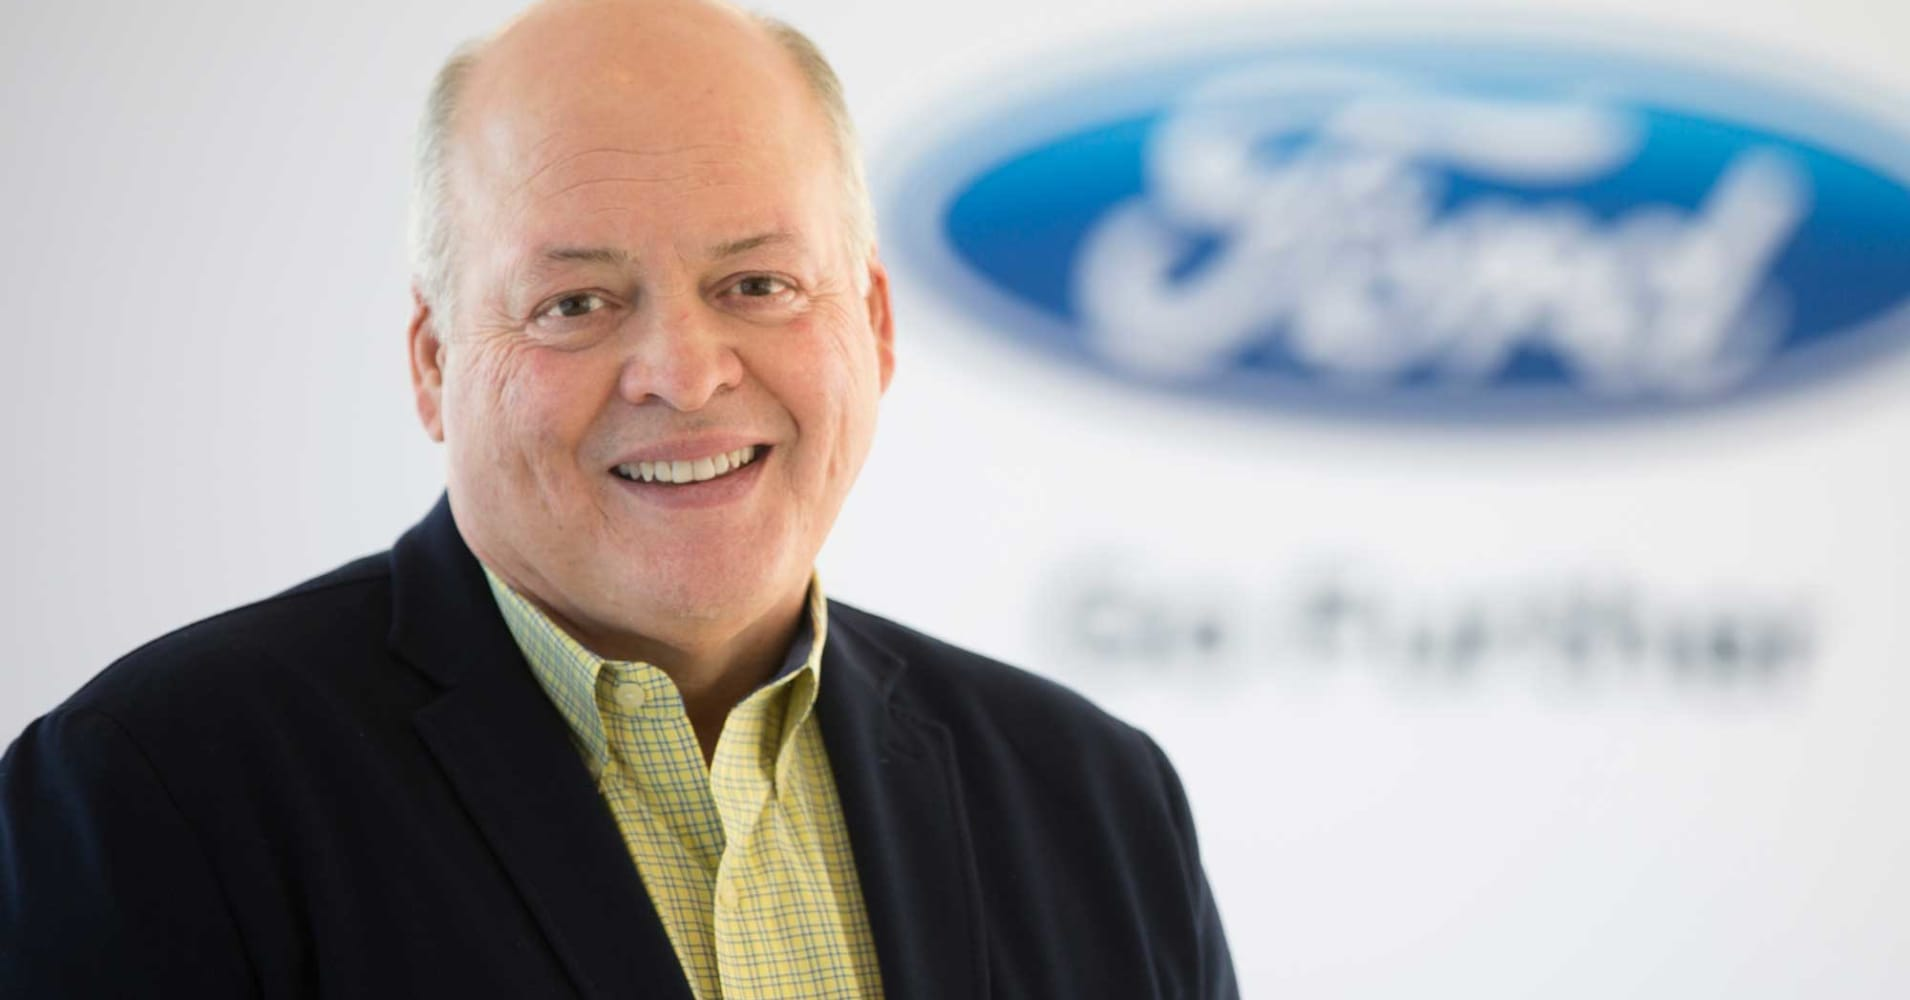 Here's why Ford is panicking in self-driving cars: Alphabet is years ahead of everybody